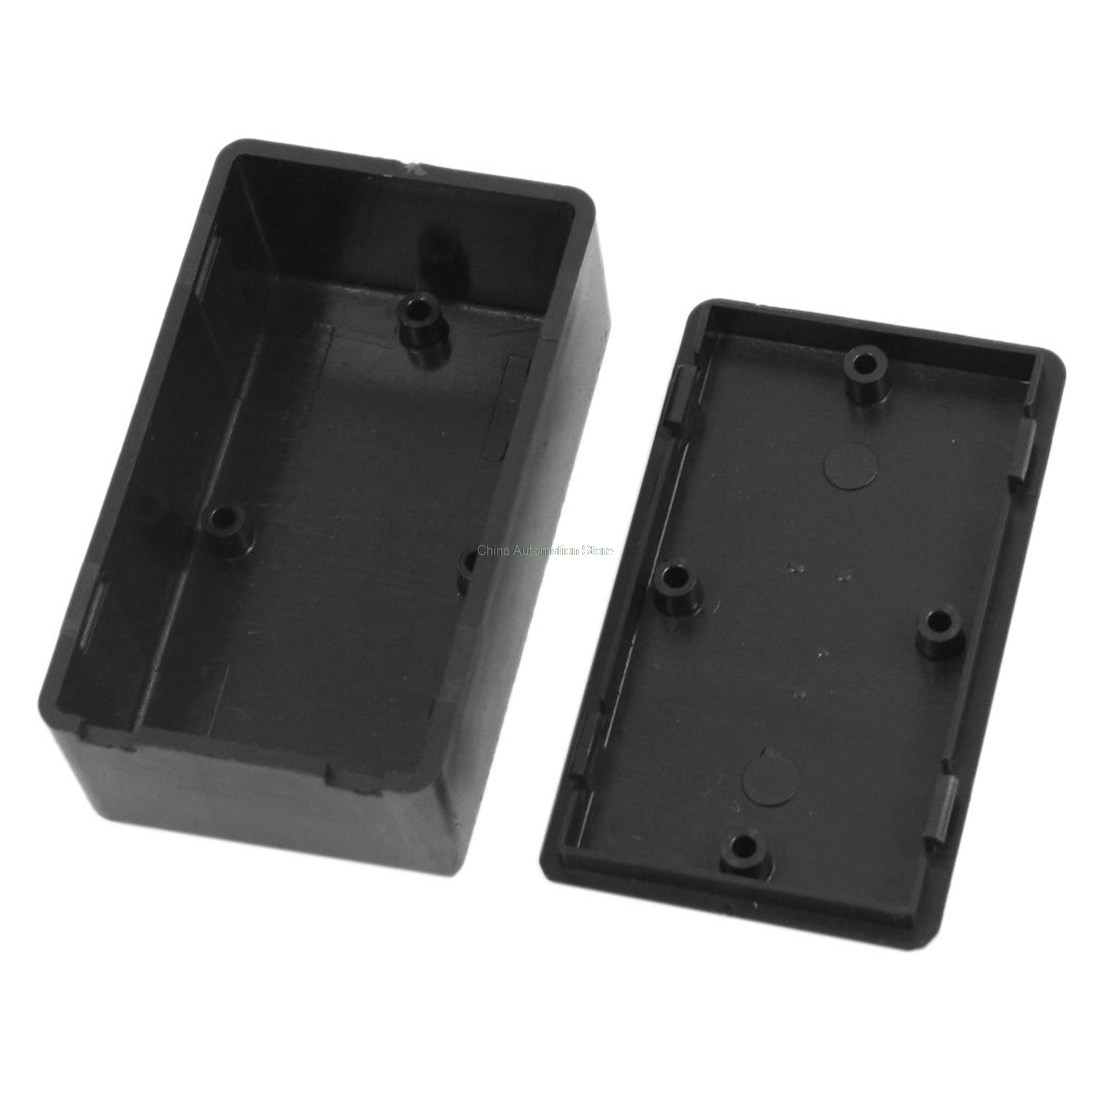 IMC Hot 5pcs Waterproof Plastic Electric Project Junction Box 60x36x25mm